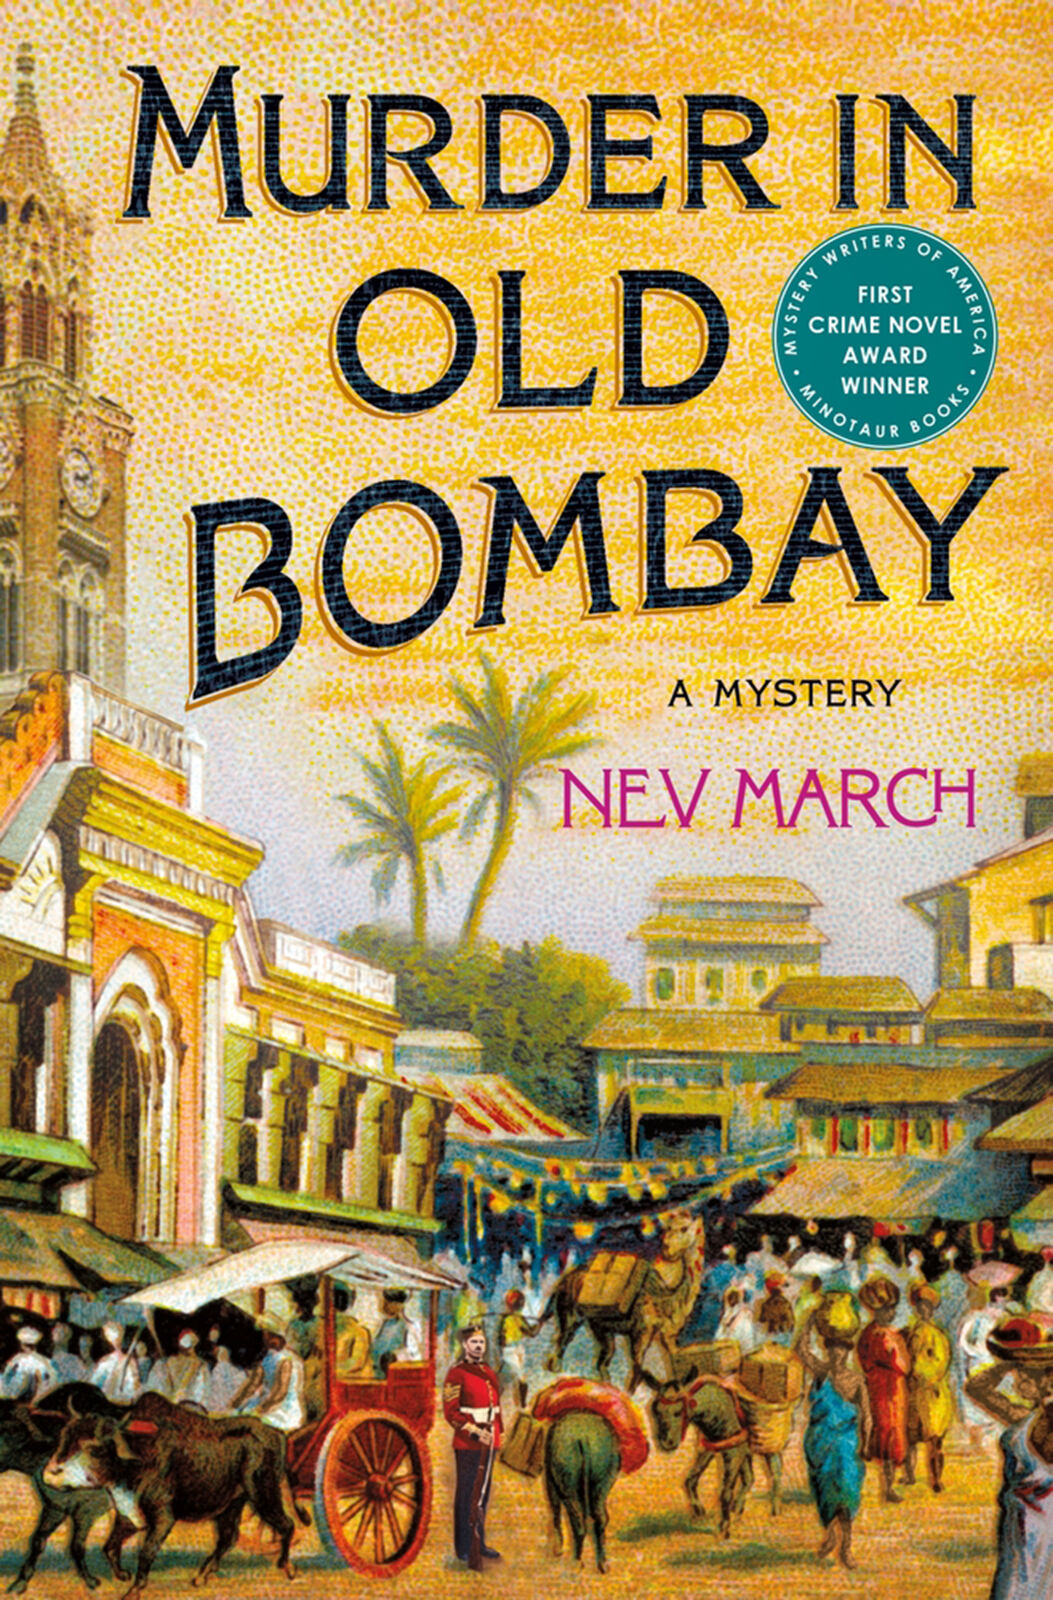 ENTER-BOOK-MURDER-OLD-BOMBAY-REVIEW-MCT